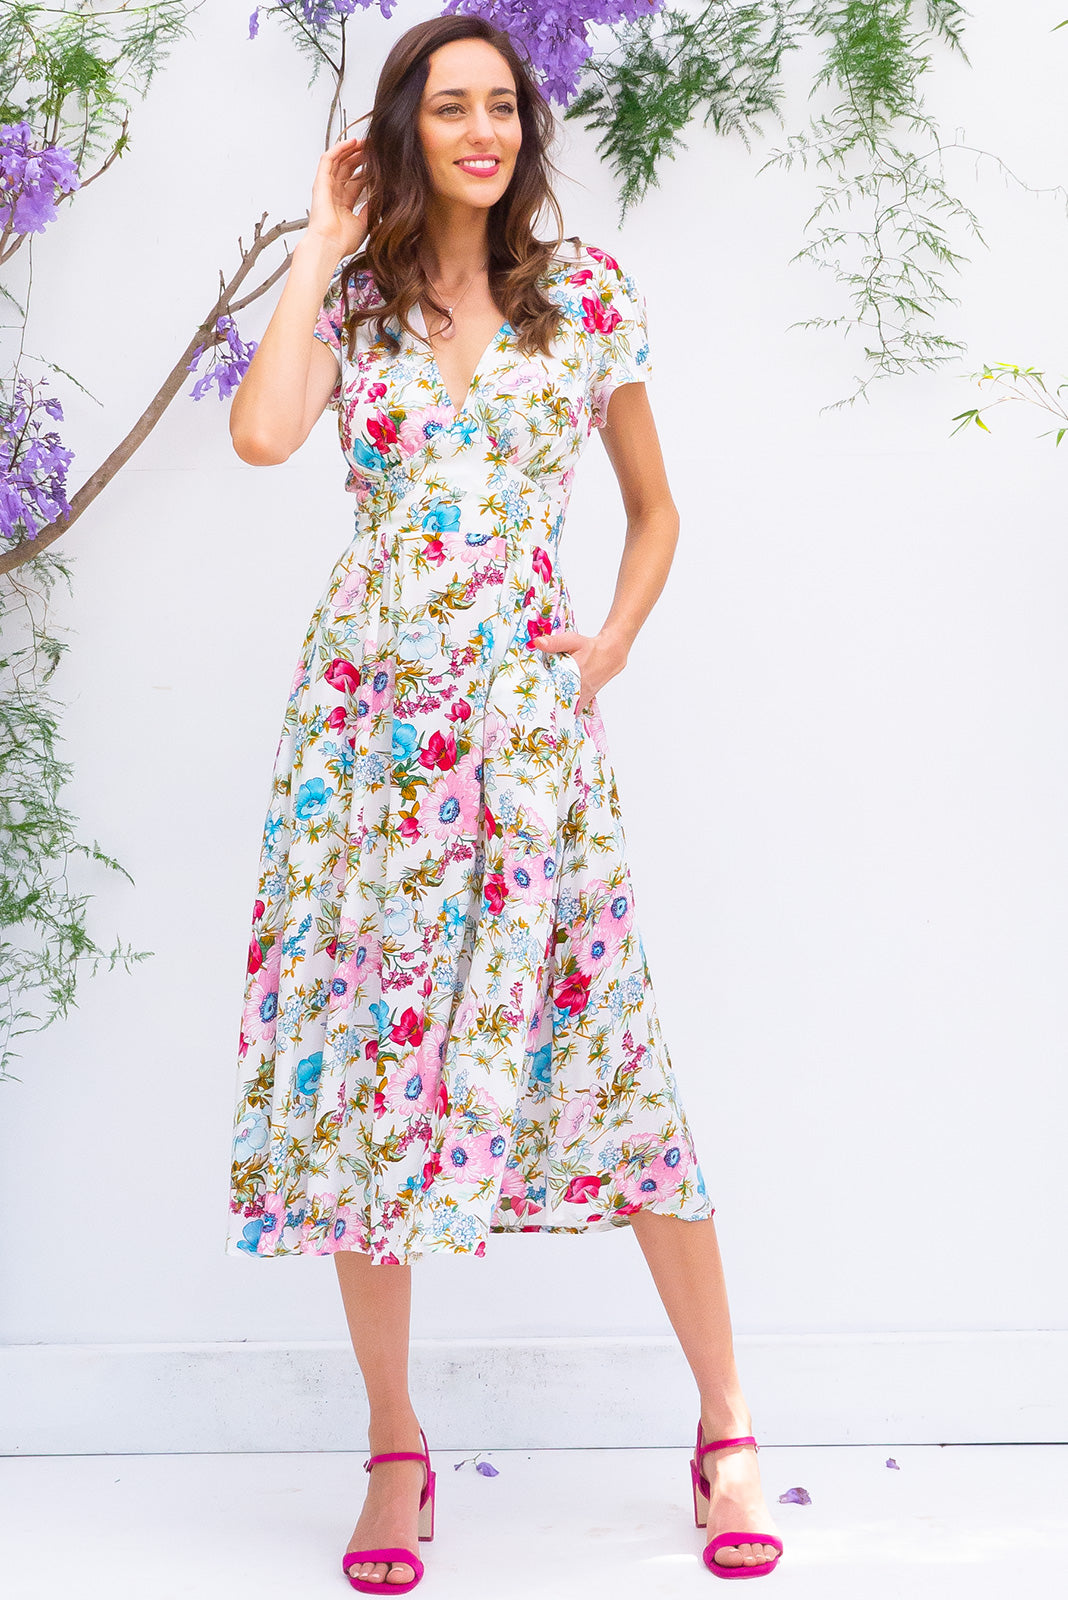 Lizzie Jolie Posy Midi dress features a vintage inspired fitted basque waist and elasticated waist with a cap sleeve and deep v neck the fabric is a soft woven rayon in a crisp white and brightly coloured bouquet floral print